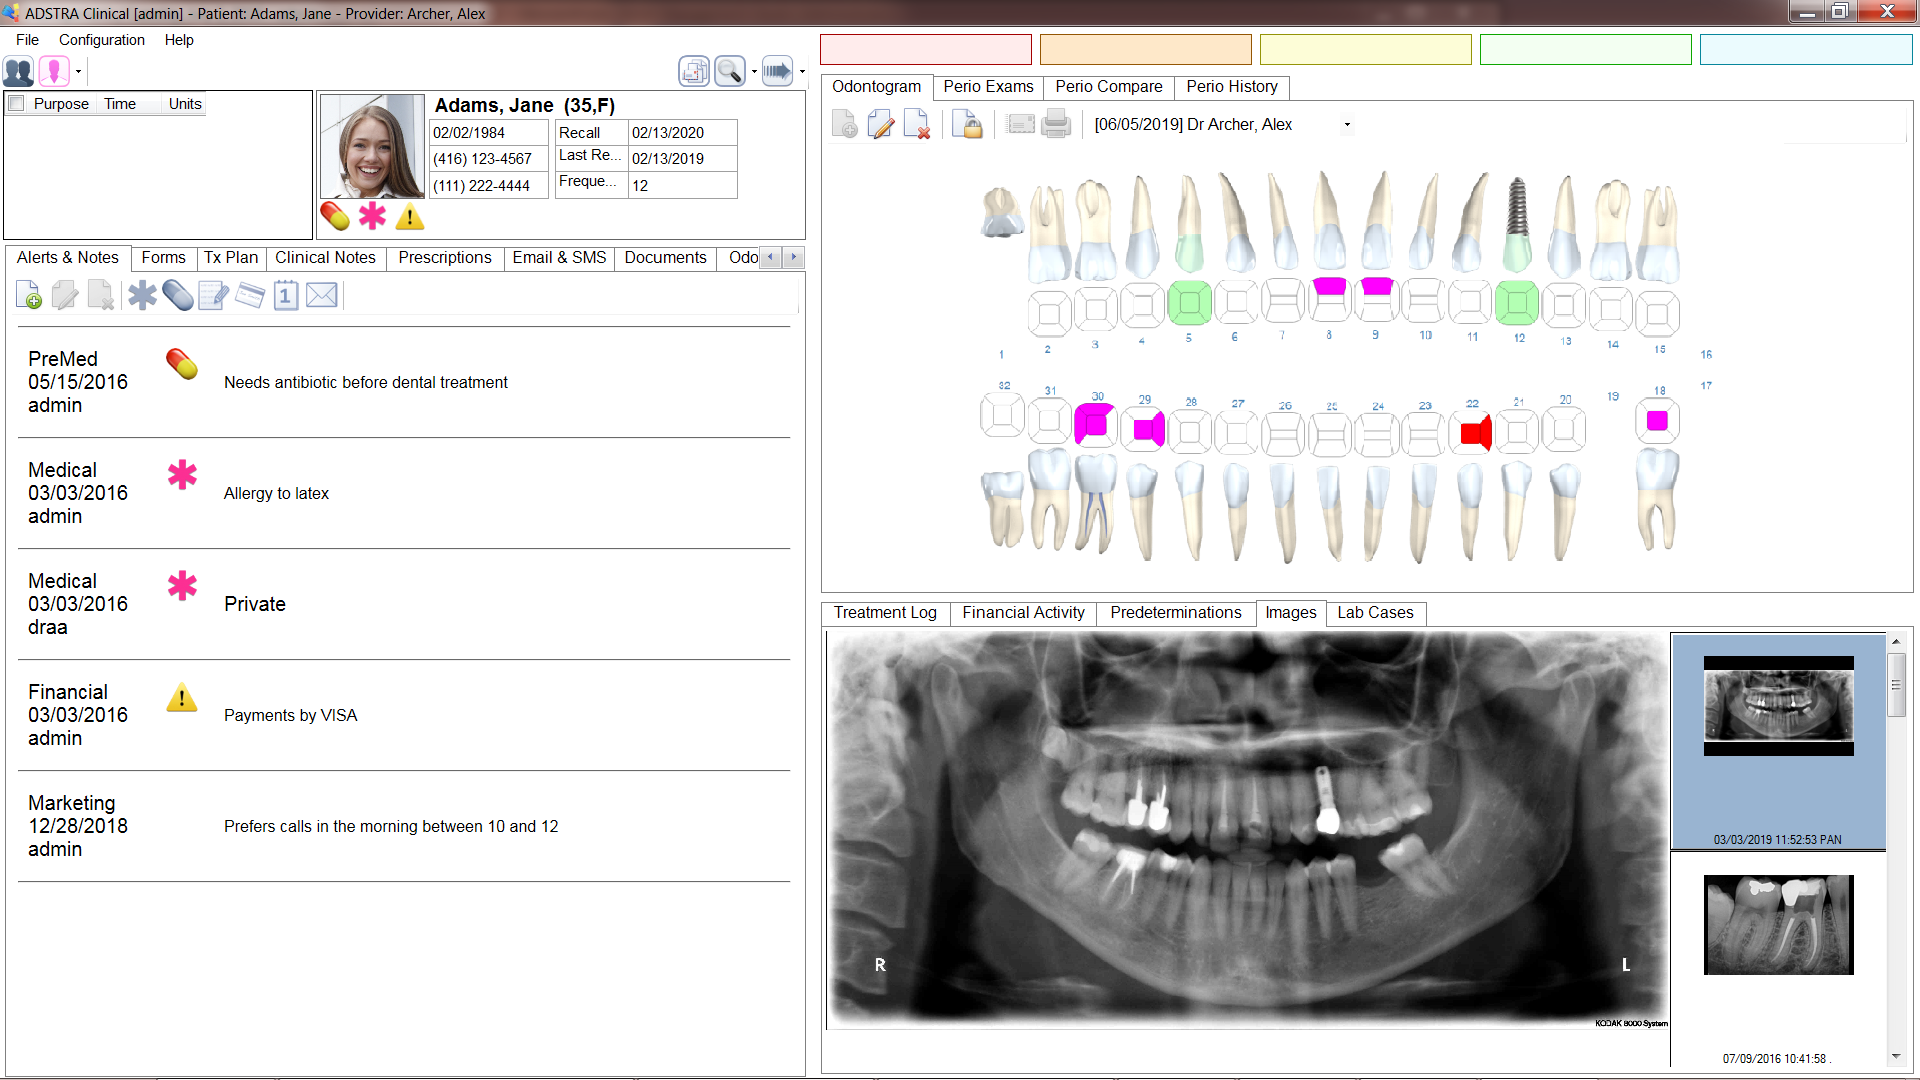 ADSTRA Dental Software screenshot: ADSTRA is an integrated dental software solution with an intuitive, user-friendly interface with tools for managing all aspects of patient care.